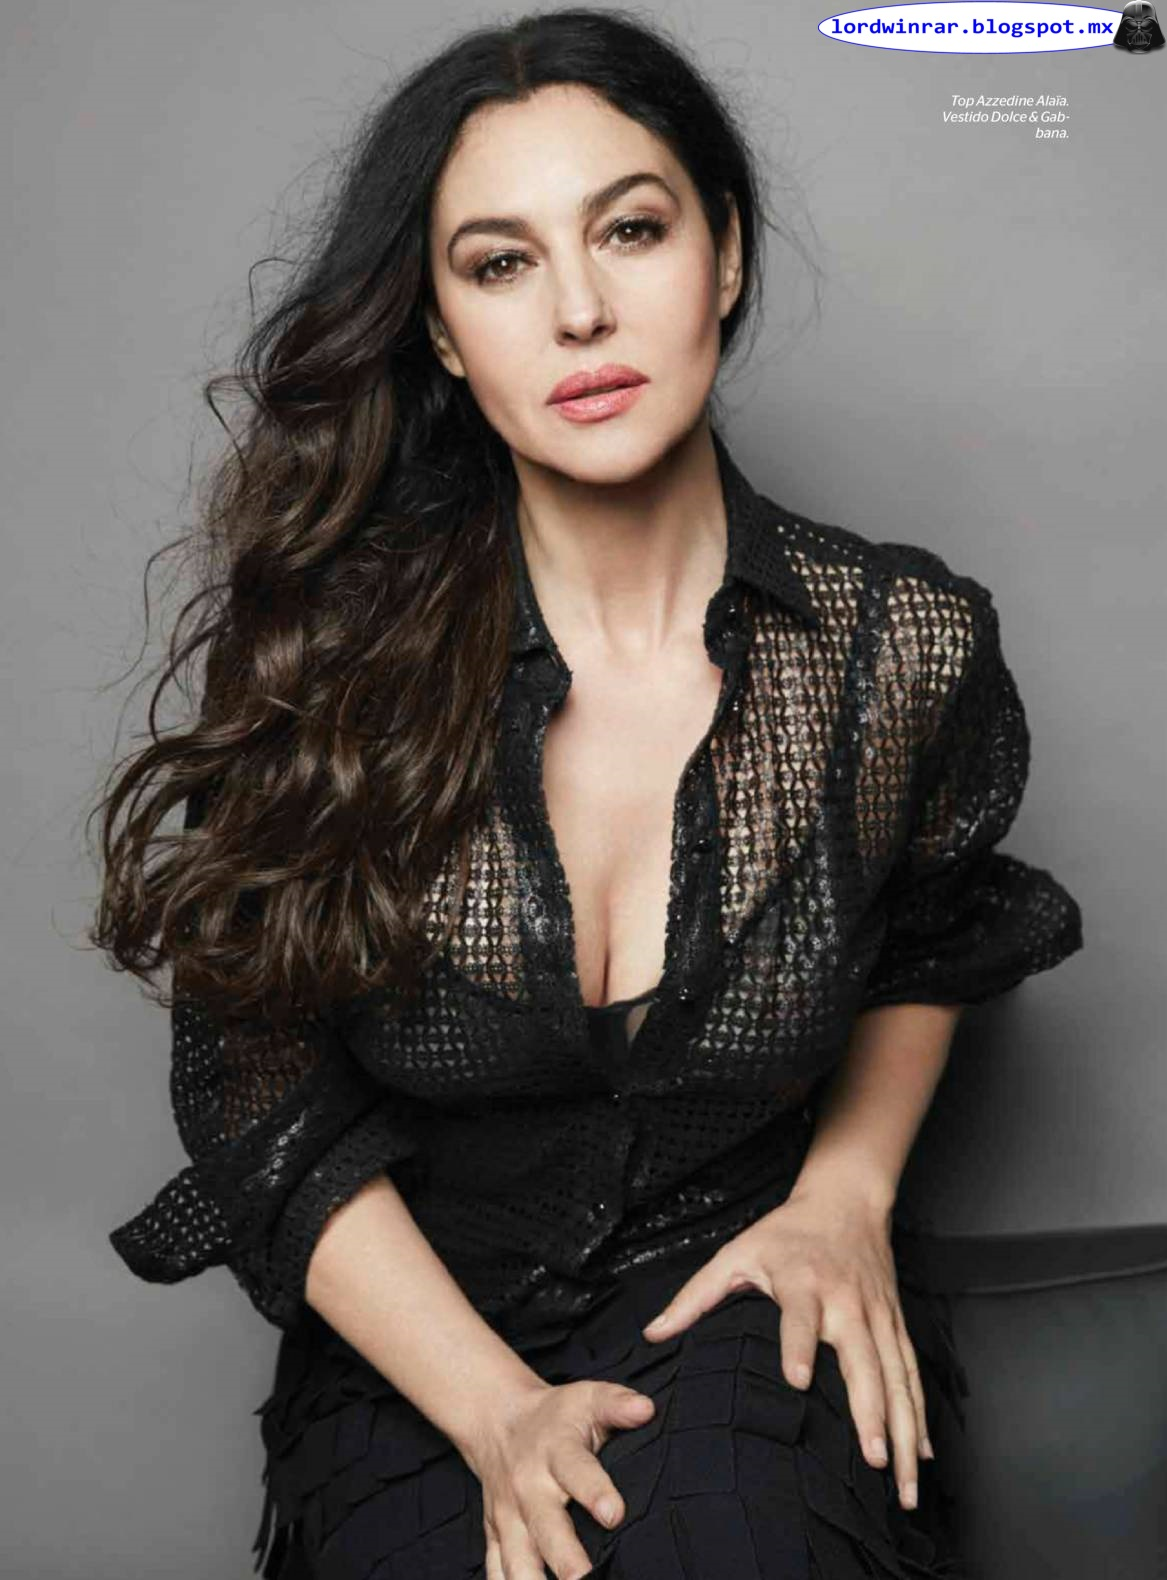 Monica Bellucci - Esquire Mexico 2015 Octubre (17 Fotos HQ) | Blog De